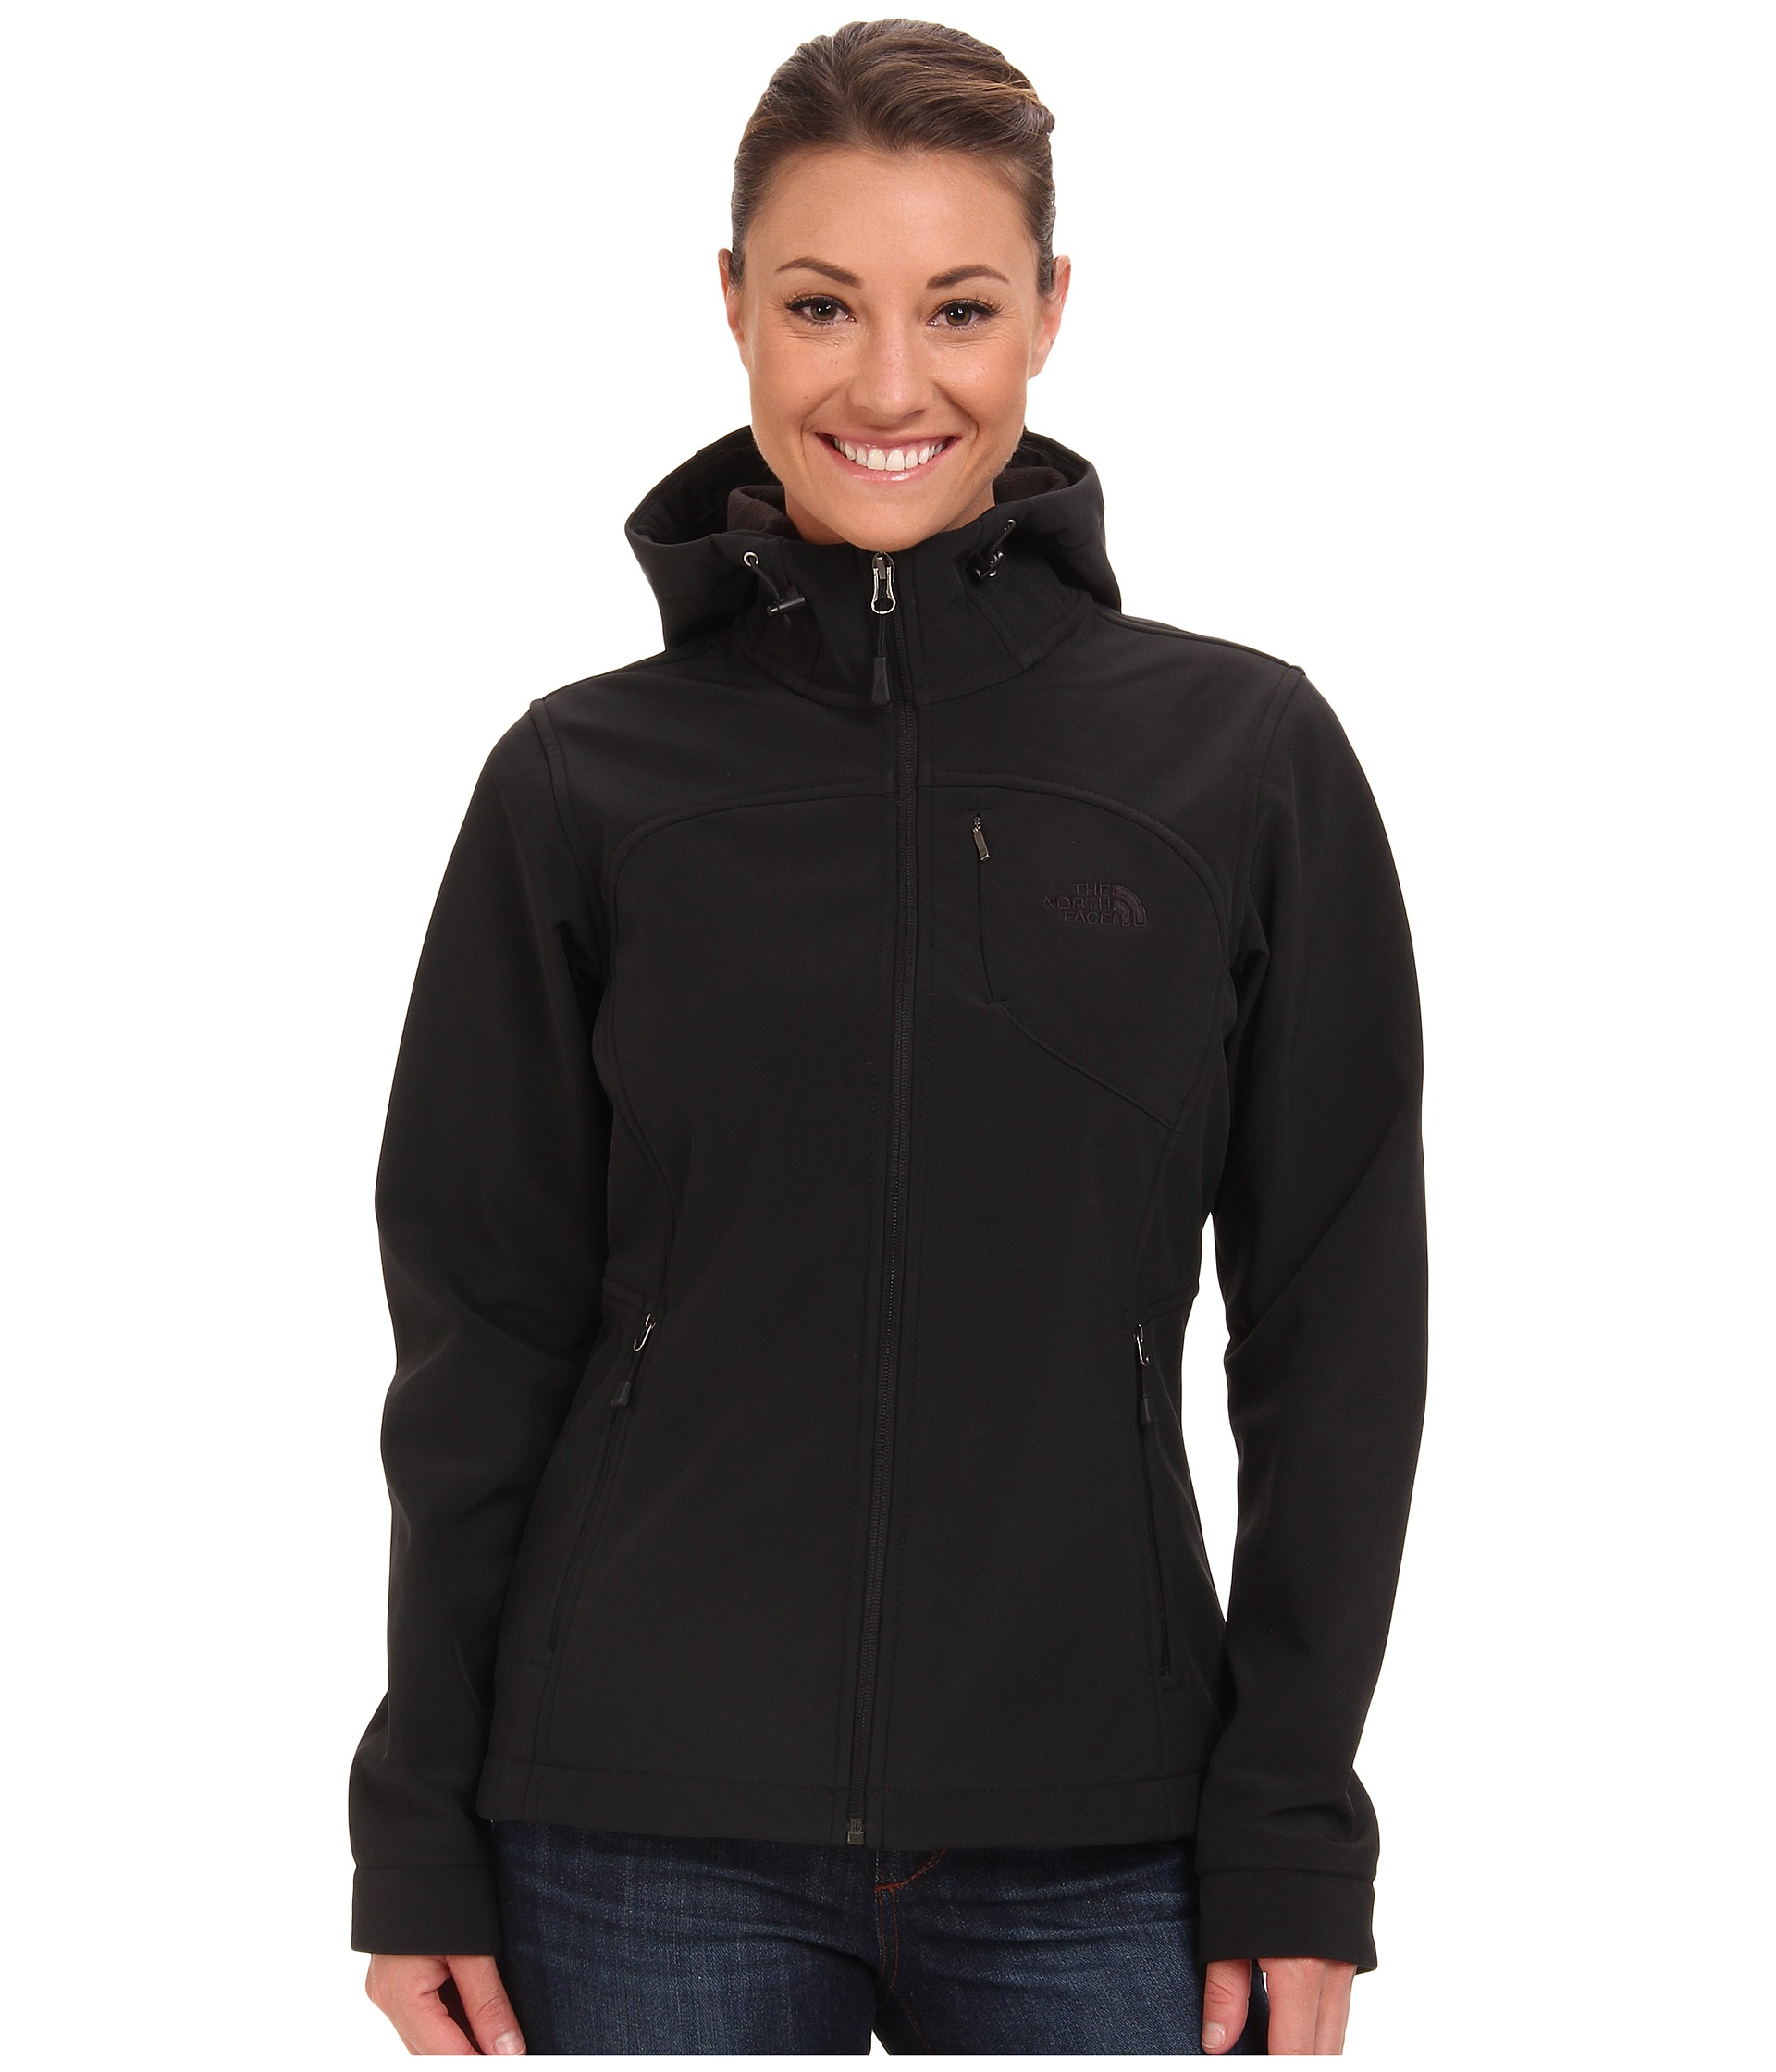 The North Face Apex Bionic Hoodie - Zappos.com Free Shipping BOTH Ways